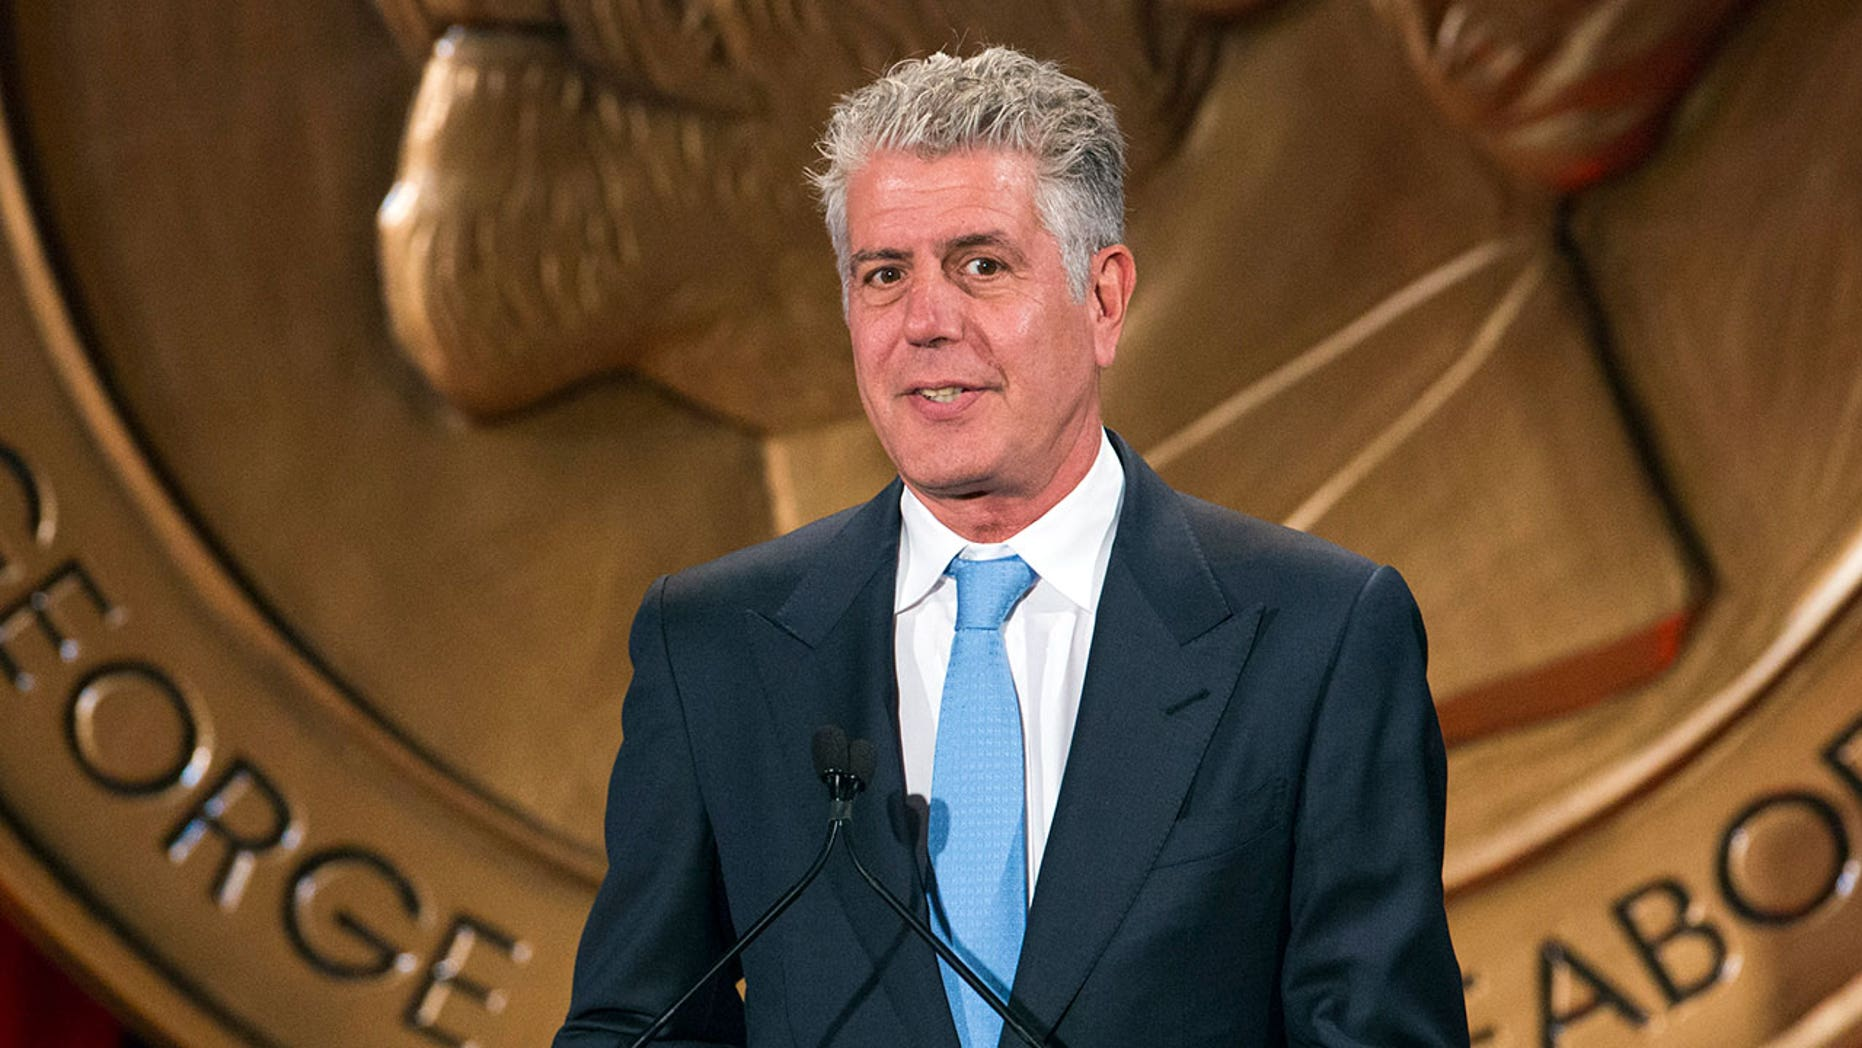 """Bourdain told Travel + Leisure he merely goes """"limp"""" when he's stuck behind slow travelers. """"I don't get angry, I don't tap my feet, I don't huff and puff or glare at people."""""""